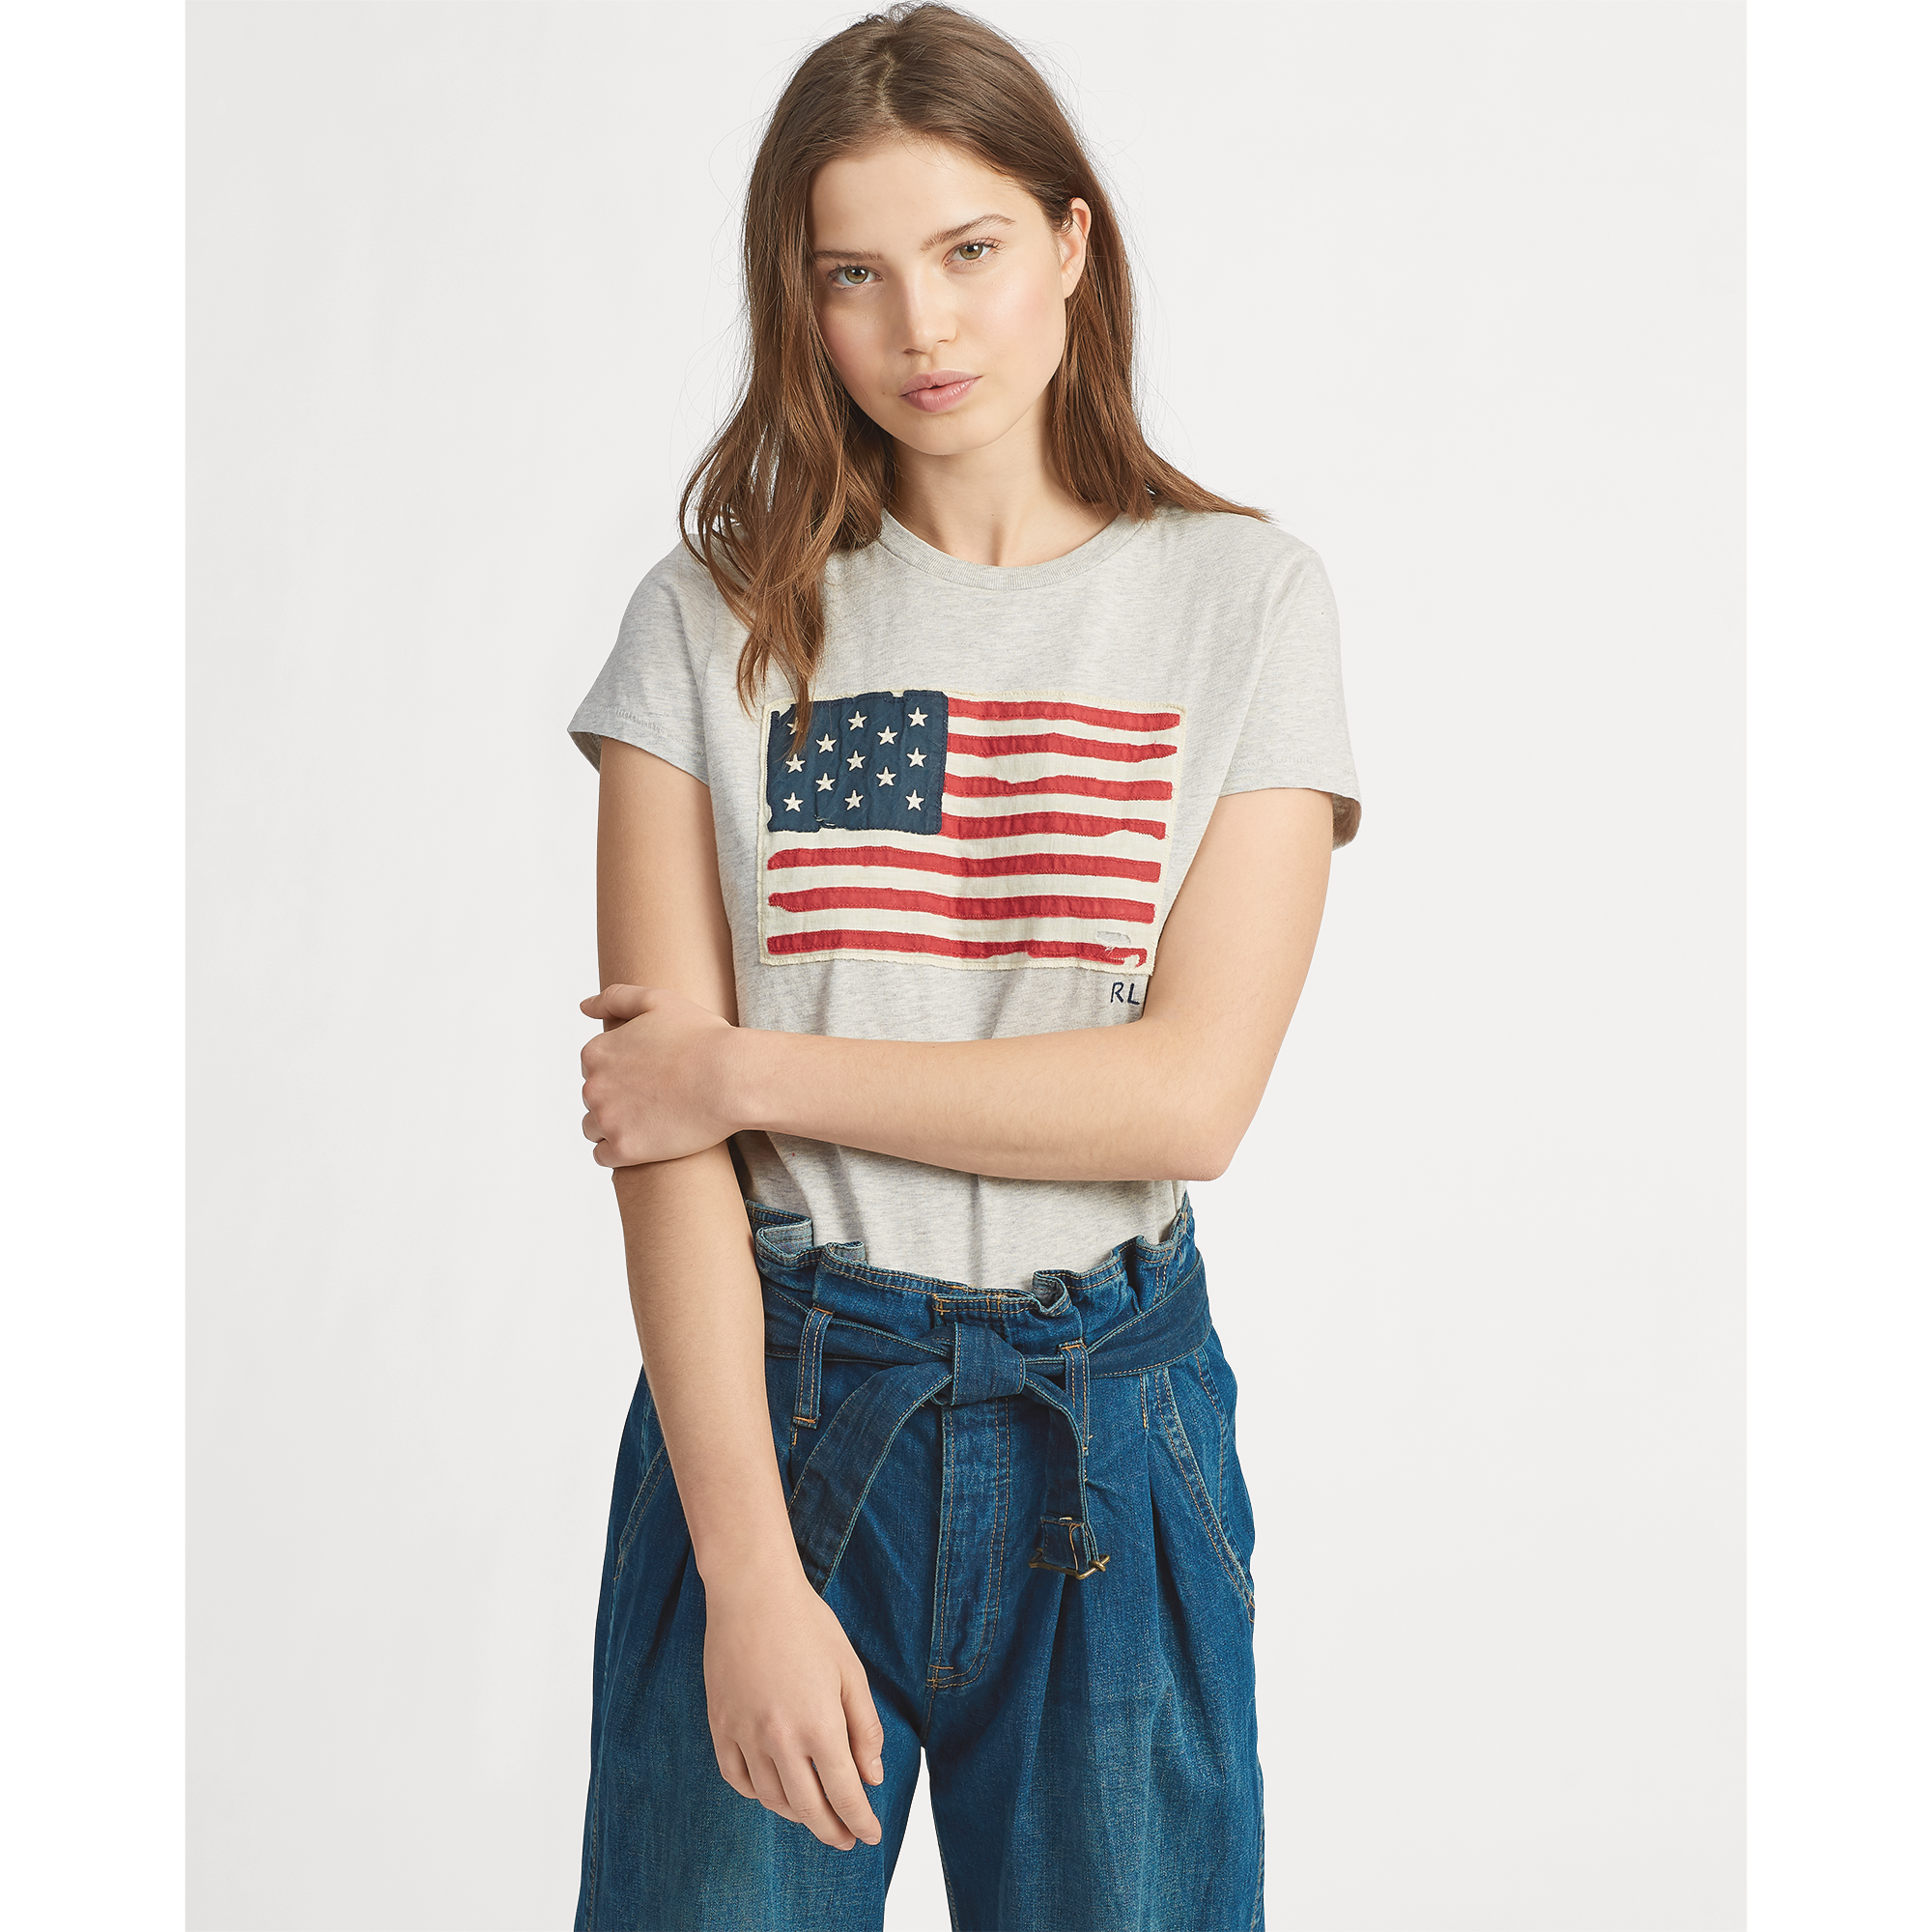 flag cotton tee - This soft cotton T-shirt embroidered with the USA flag and initials embodies Mr. Lauren's long-standing love of all-American style and is now available in the Ralph Lauren sale for£47.20. Stock is limited.